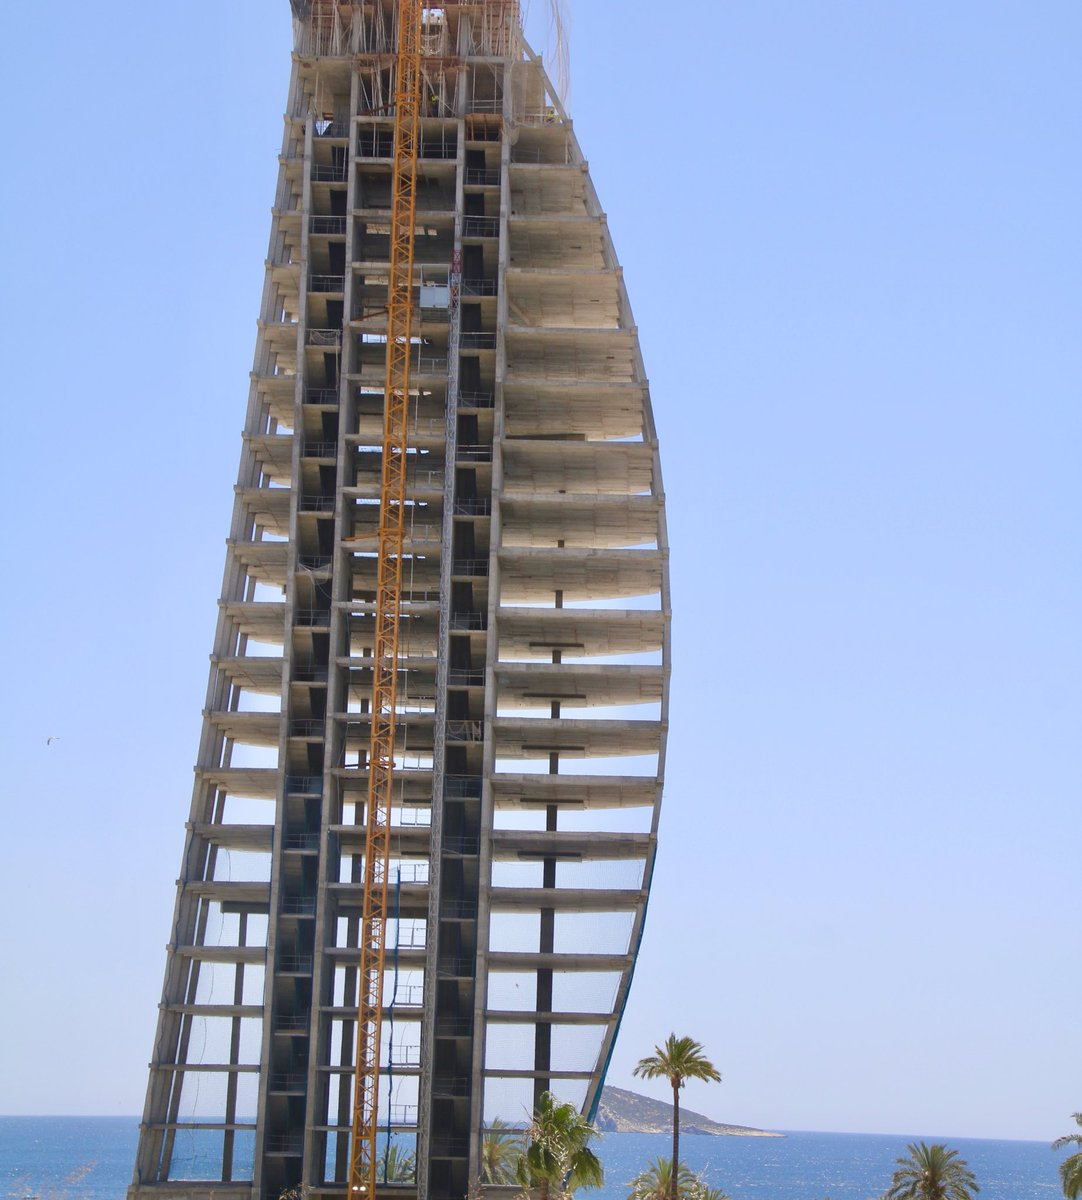 The framework of Delfin Tower on La Cala beach. What a place to live with a view to die for #benidorm #beach #playa #sun #sol #view #vista #spectacular #mediterranean #mediterraneo #costablanca #spain #españapic.twitter.com/PTsweZFlII